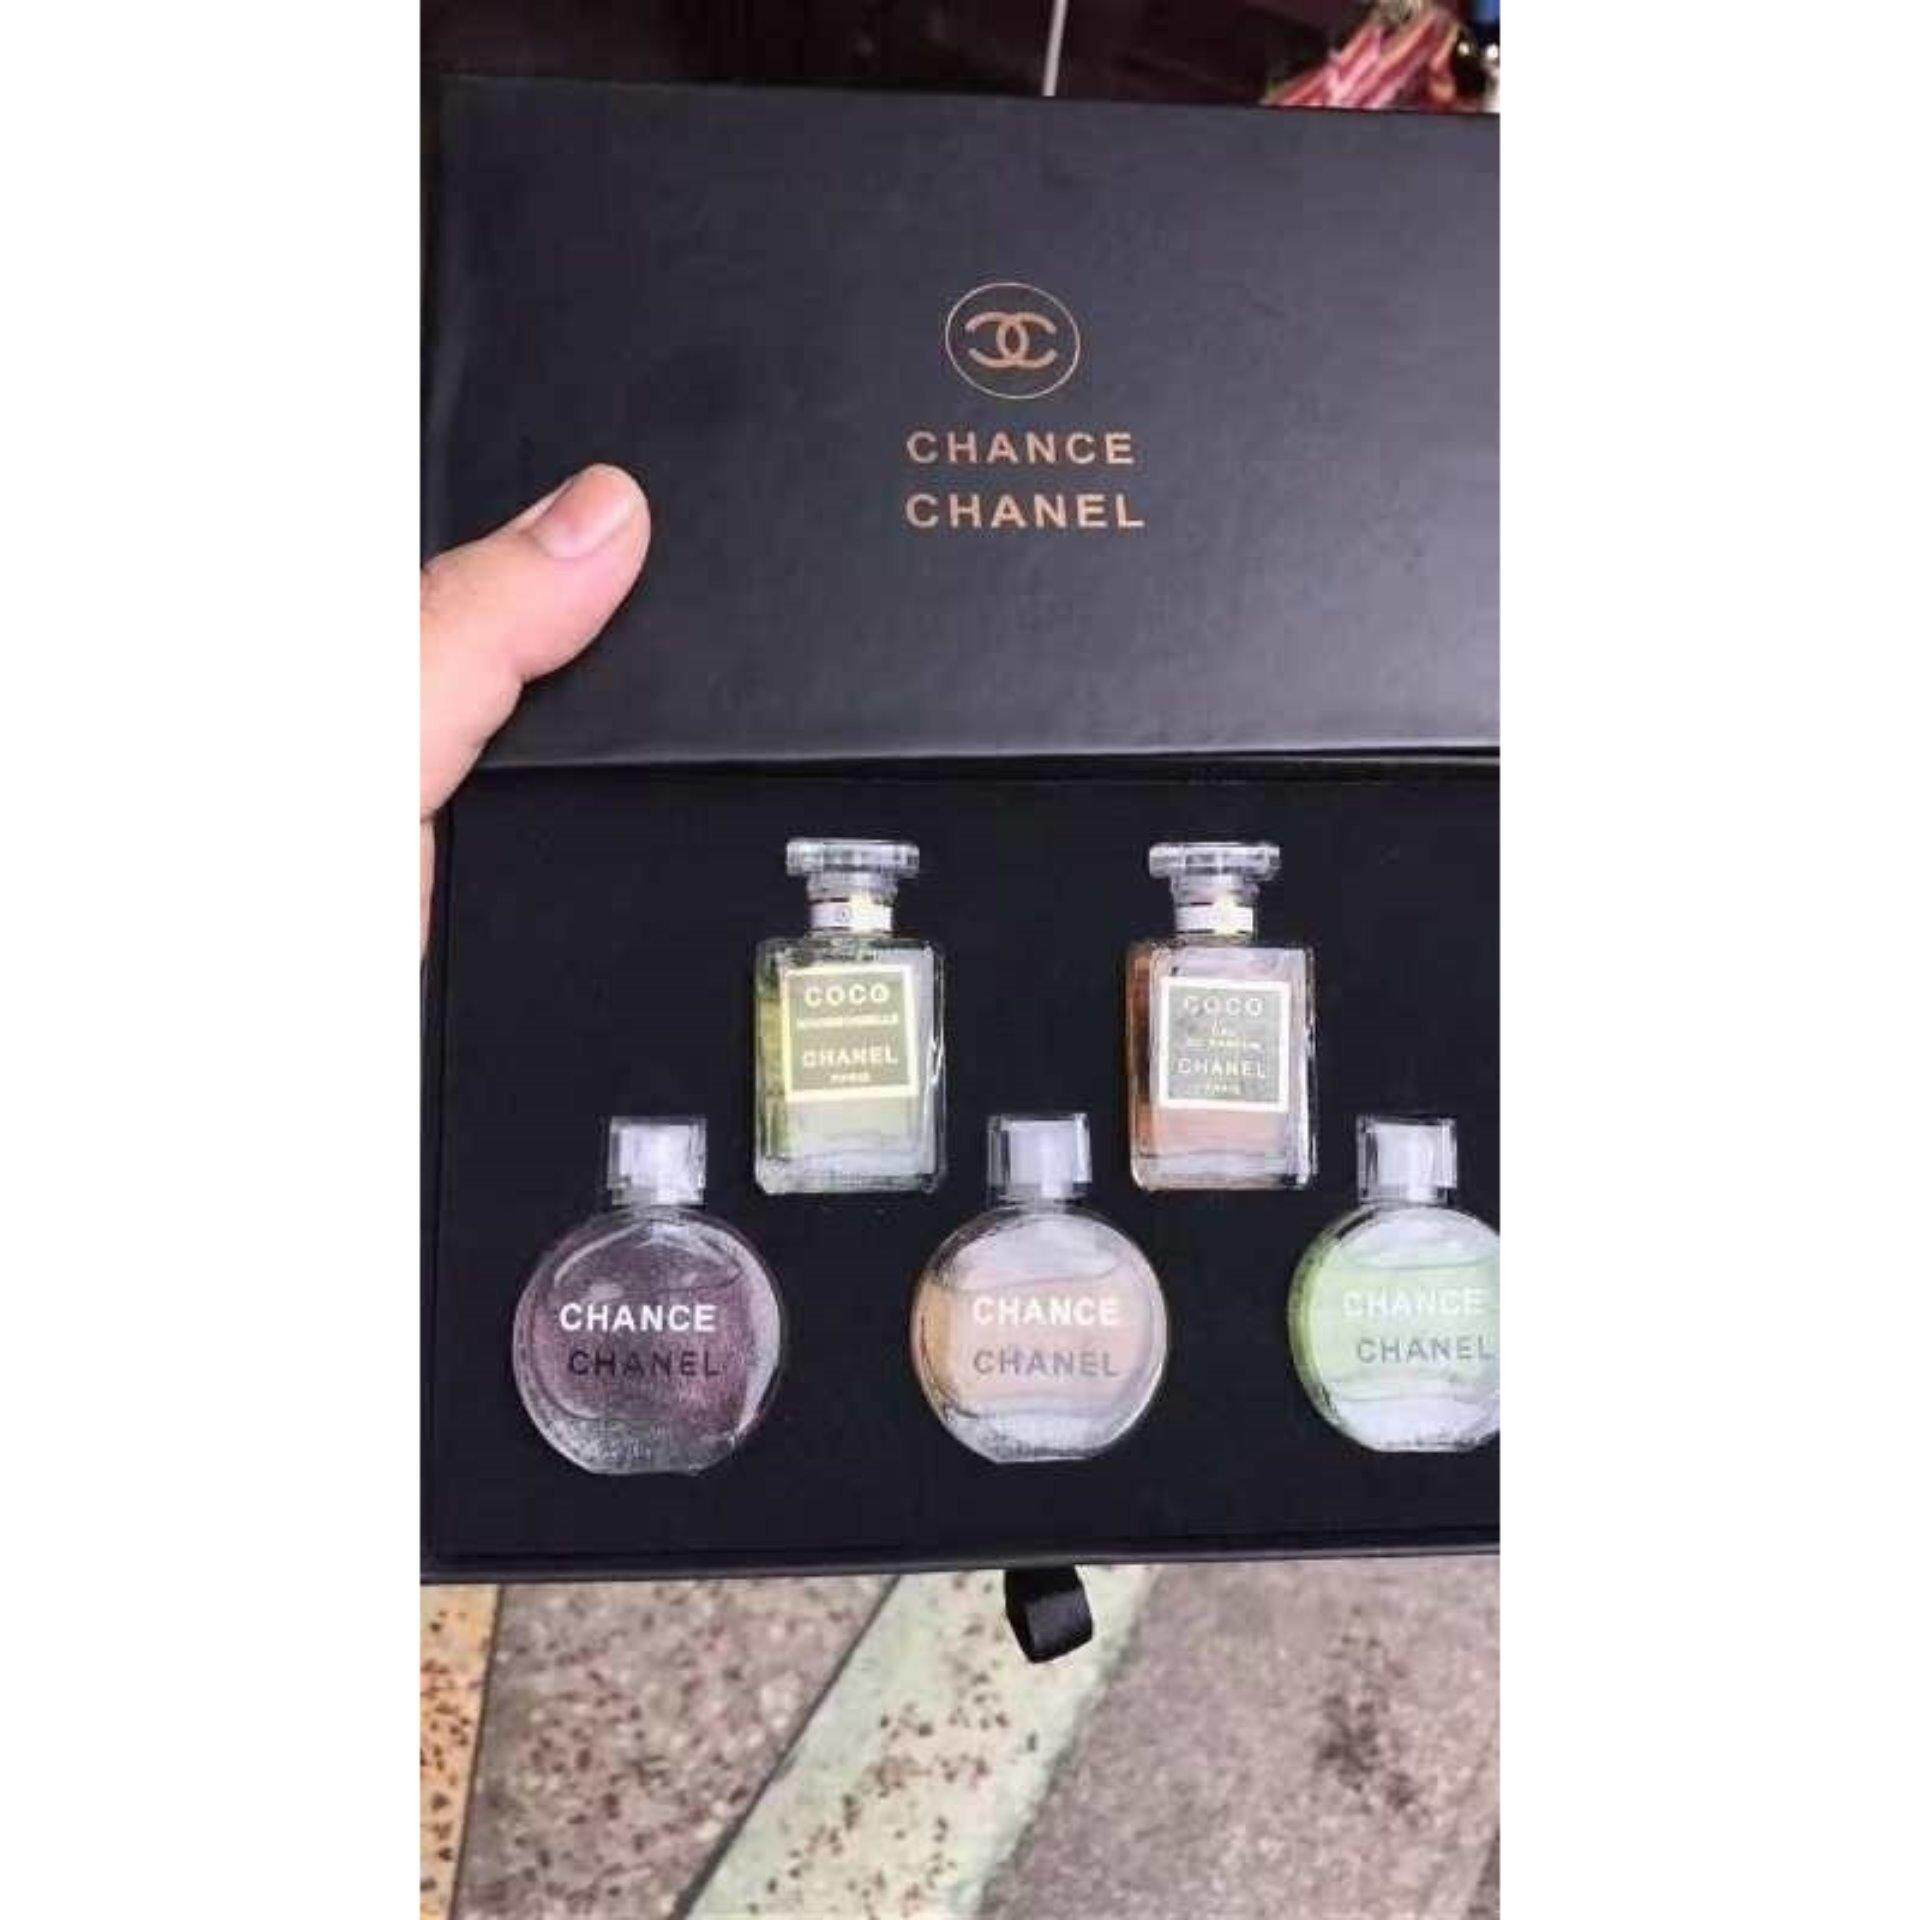 Chanel 5 in 1 Perfume Travel Set Chance and Coco Mademoiselle- RARE